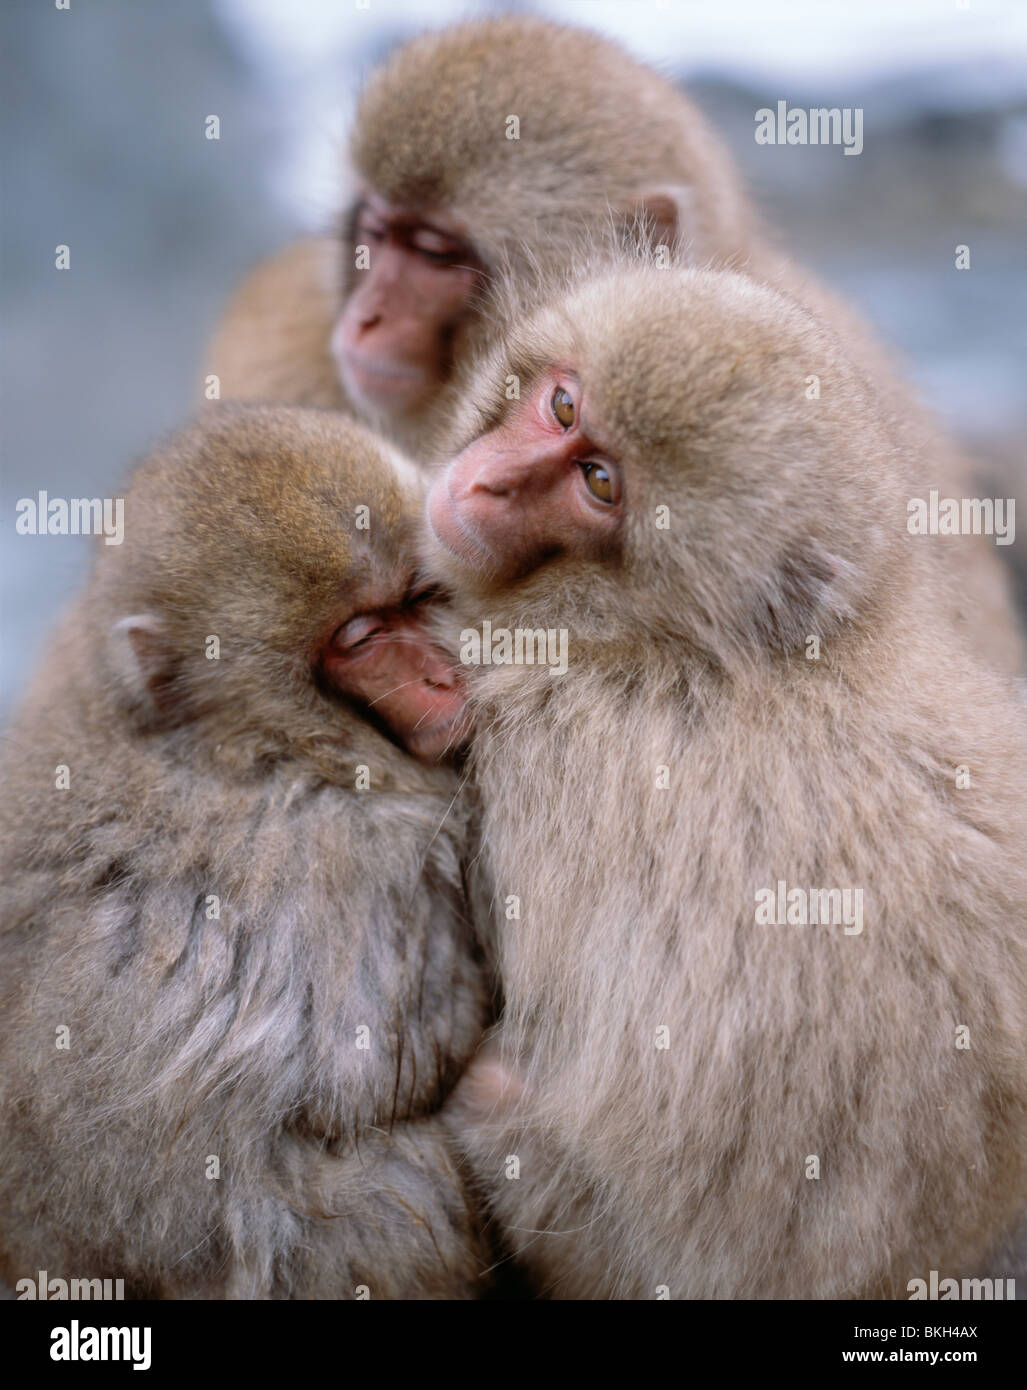 Japanese Snow Monkey , Japanese Macaque ( Macaca fuscata ) bathing in hot springs Jigokudani, Nagano, Japan Stock Photo